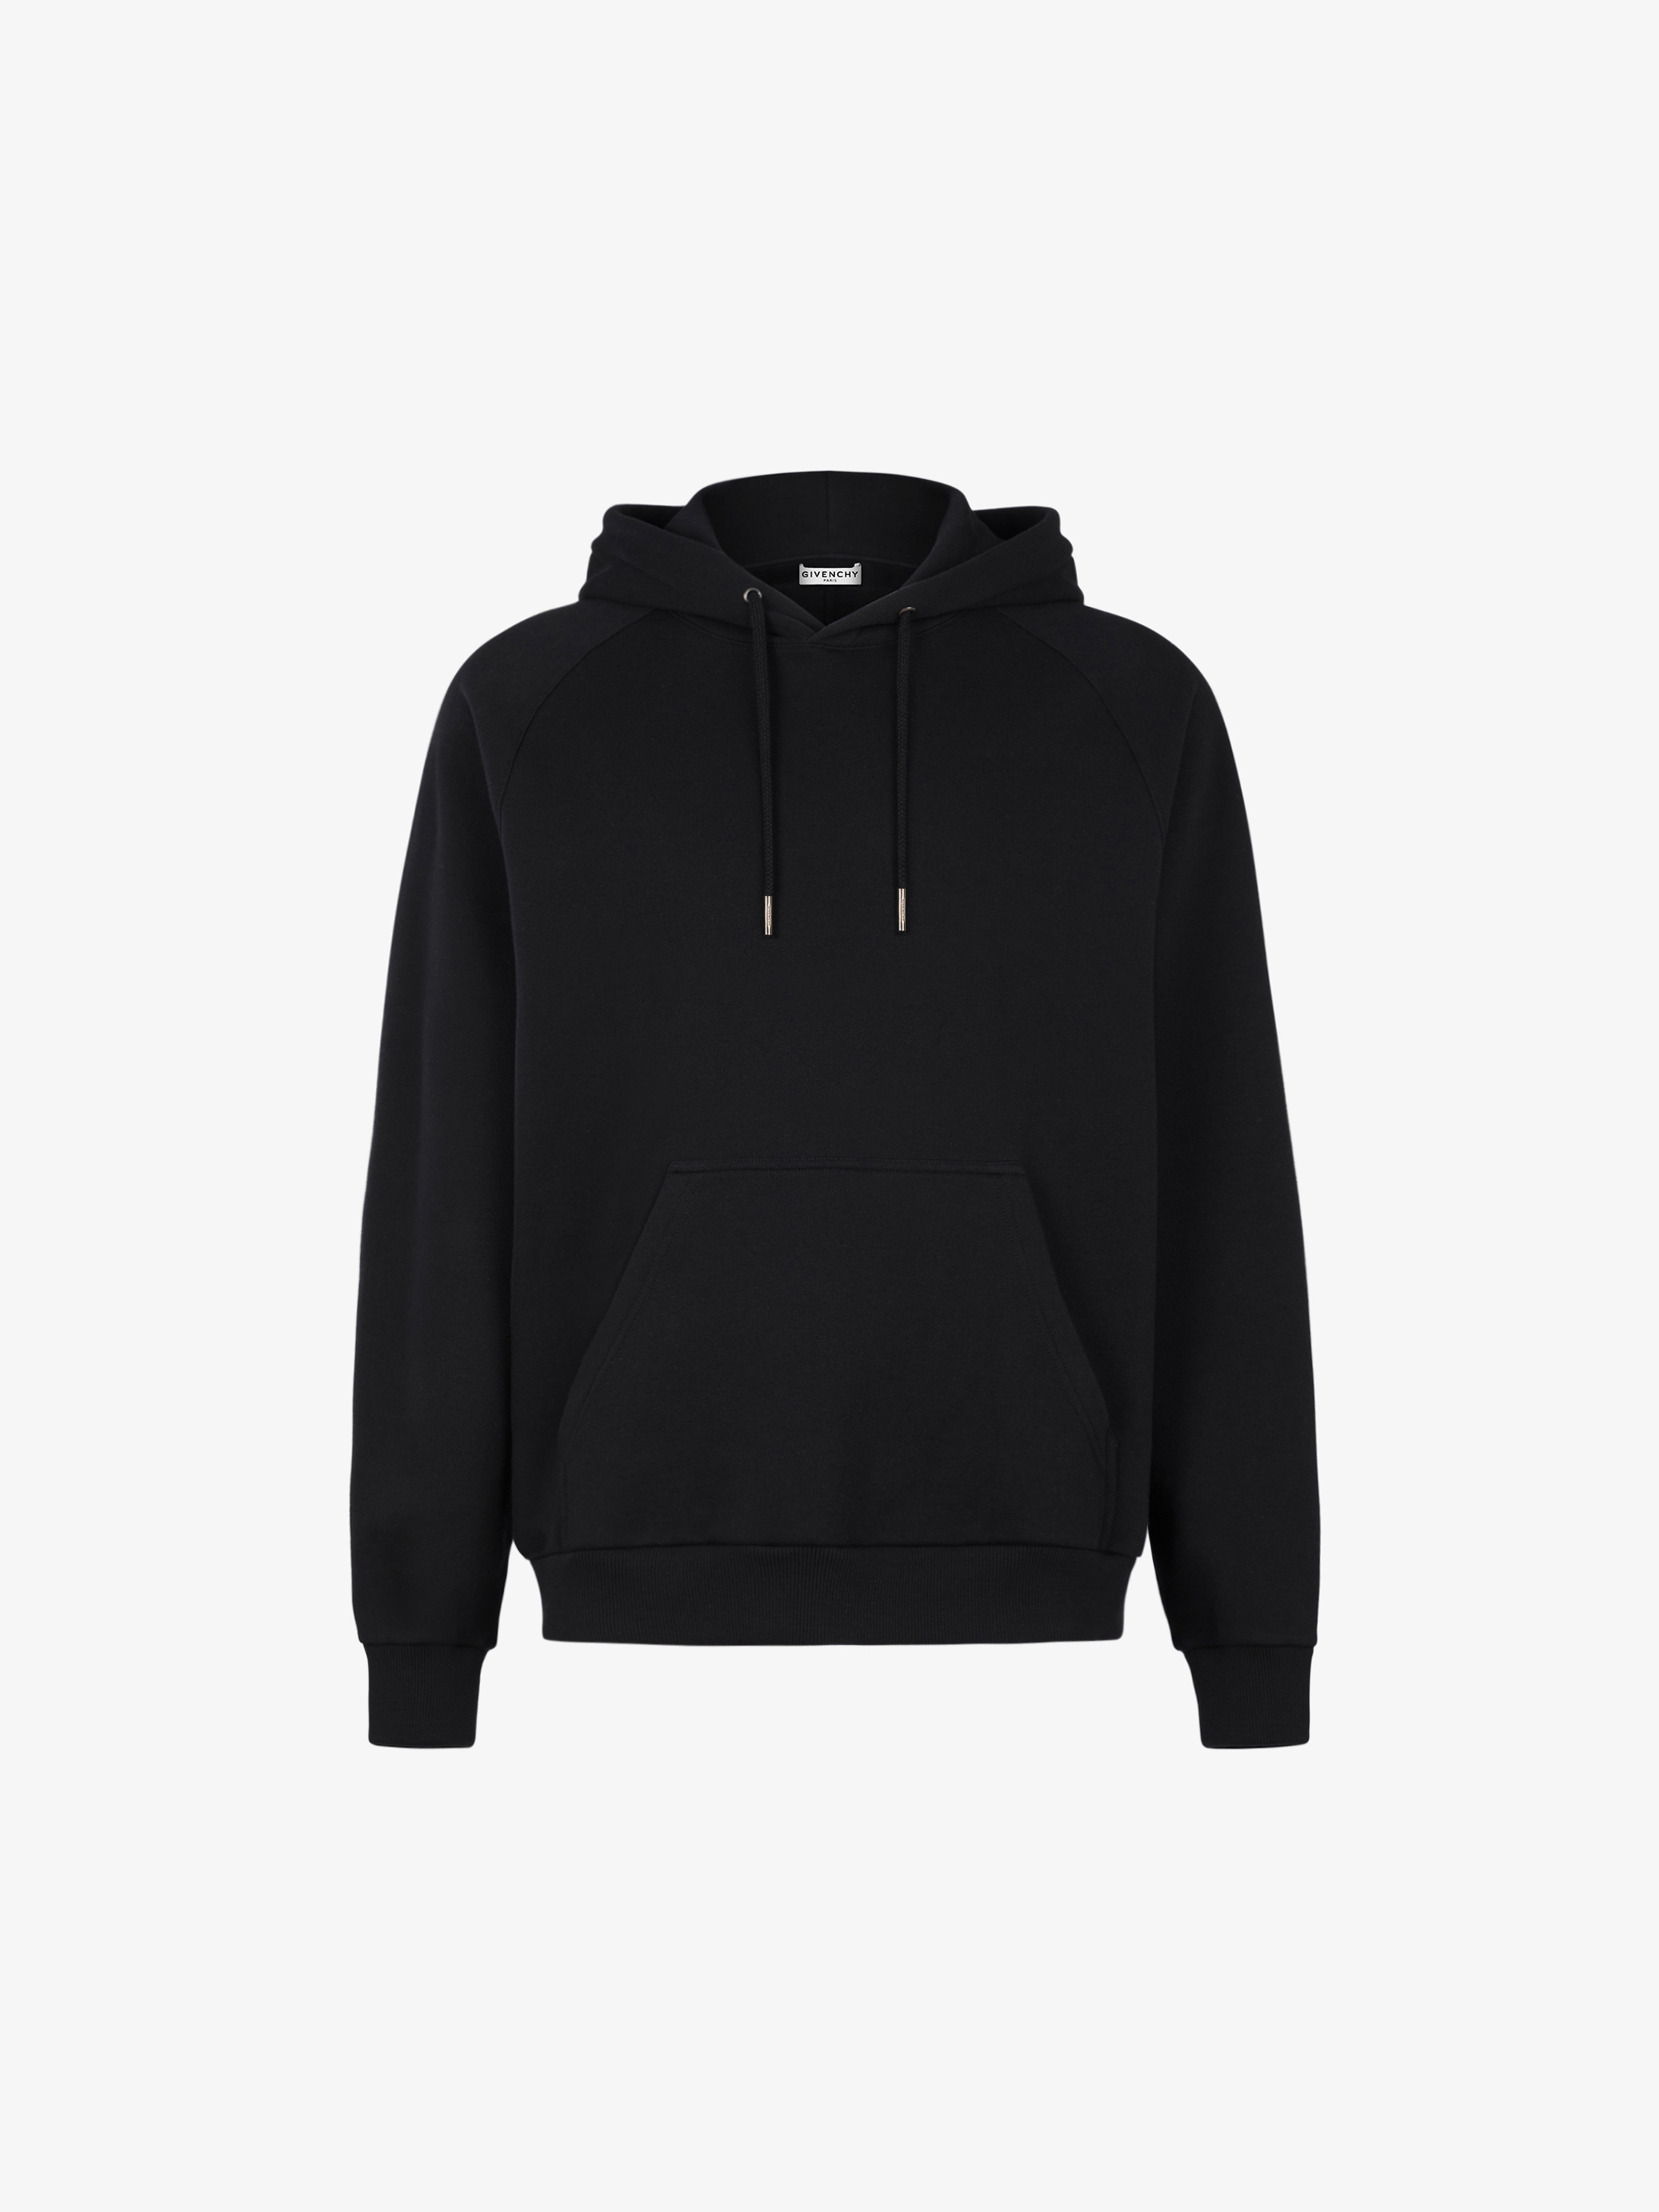 GIVENCHY SPLIT hoodie